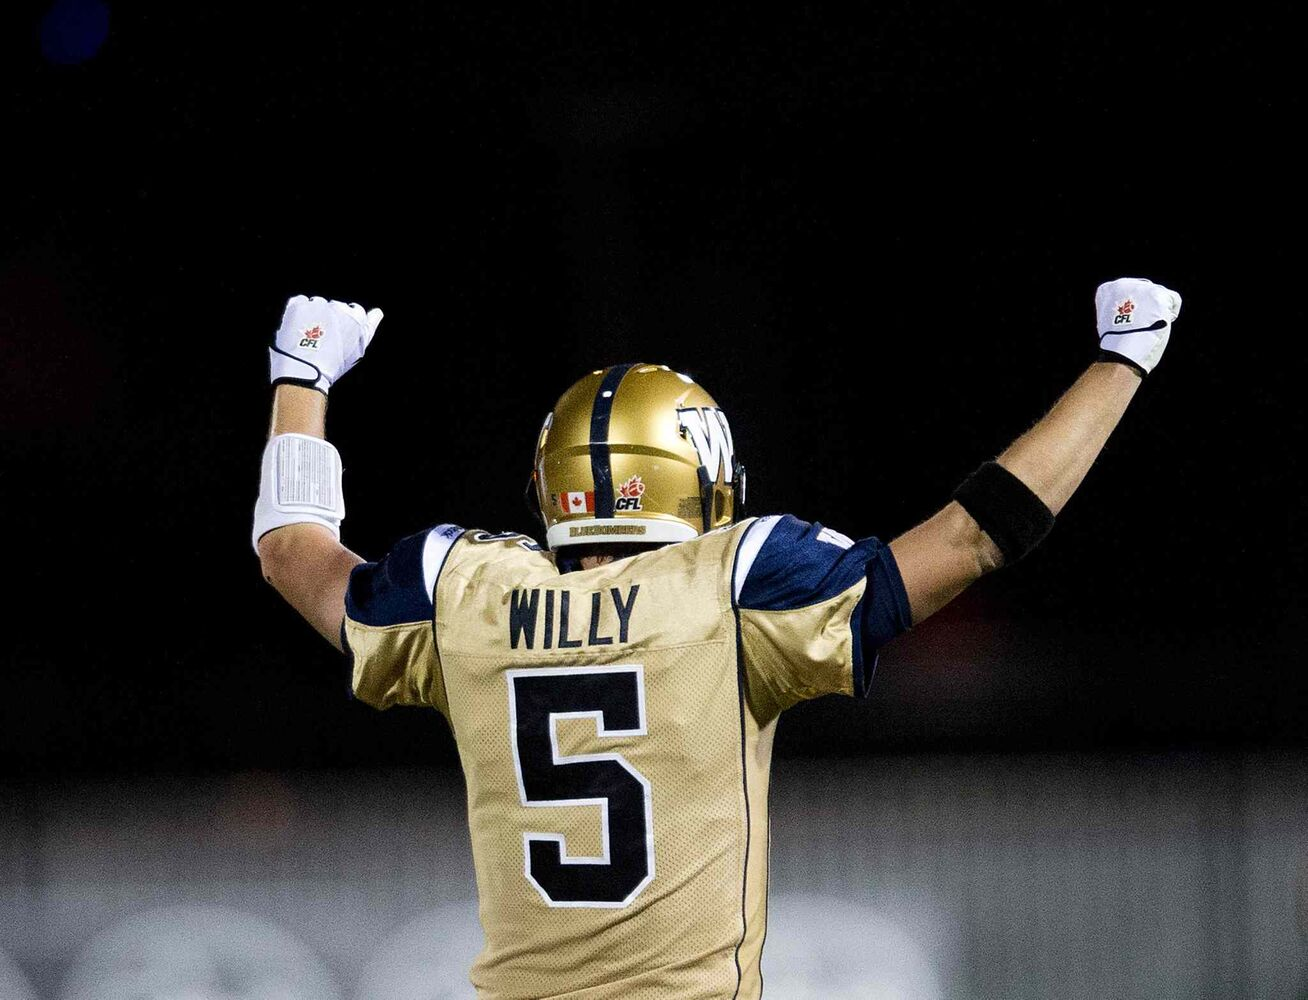 Winnipeg Blue Bombers' quarterback Drew Willy celebrates after throwing the game-tying touchdown in the final minute of Thursday's game against the Hamilton Tiger-Cats. (Nathan Denette / The Canadian Press)